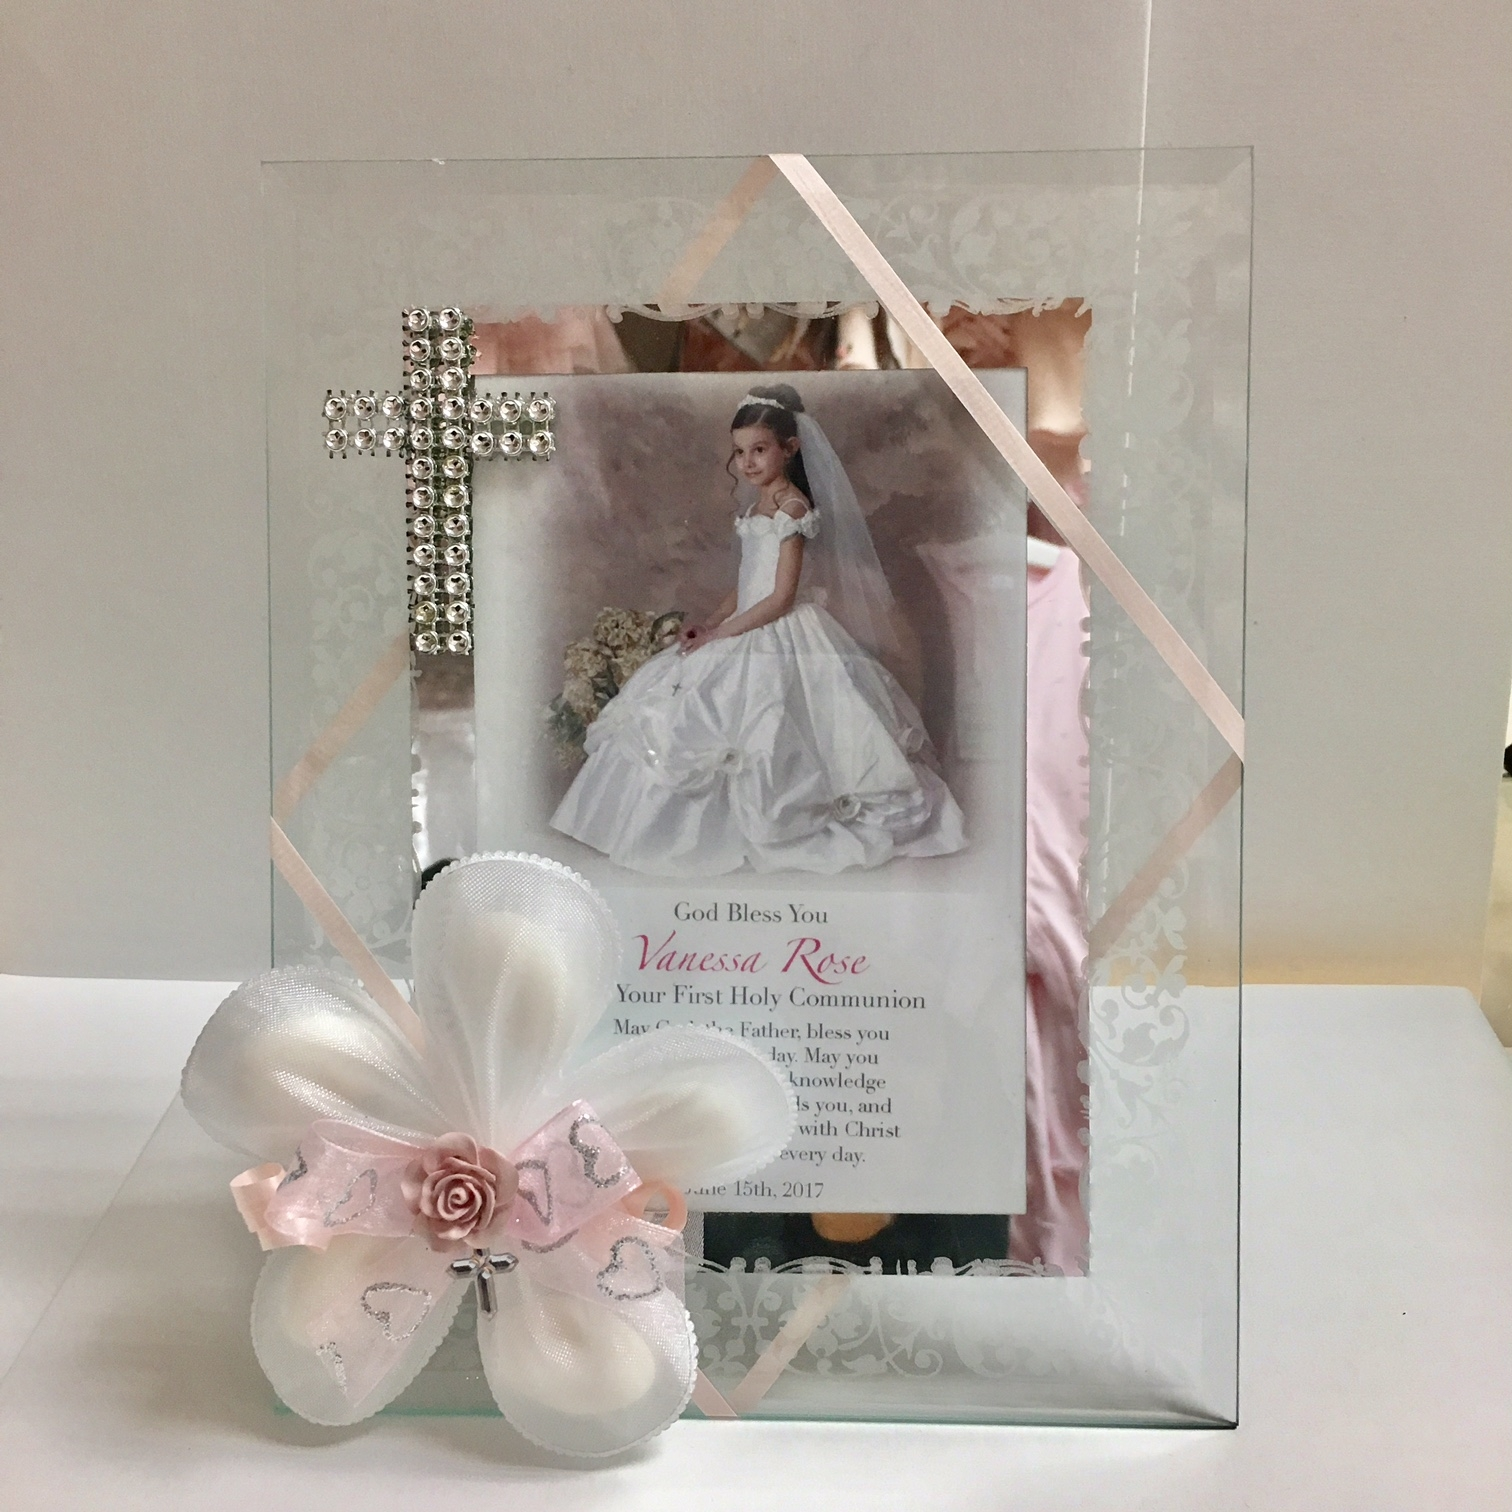 2x3 Mirrored Frame Personalized Bomboniere